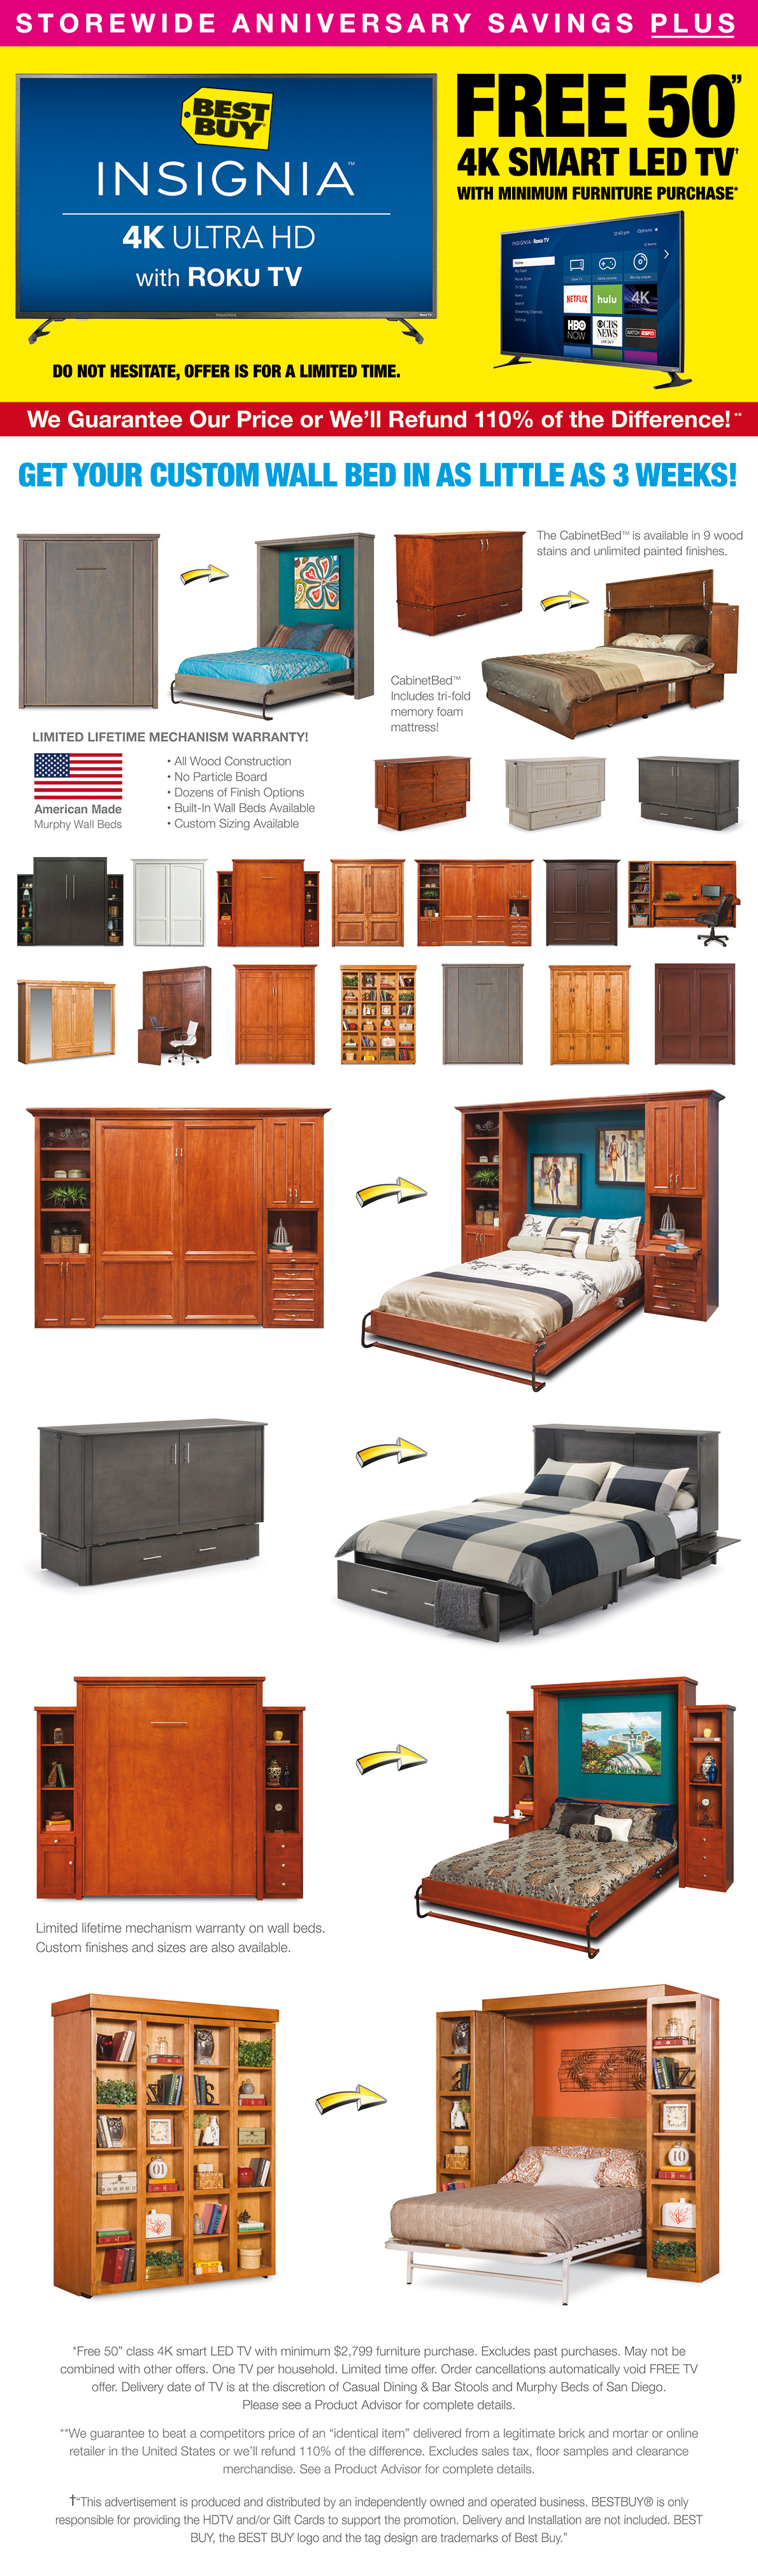 Anniversary Sale Storewide Savings 2018 Murphy Beds Of San Diego